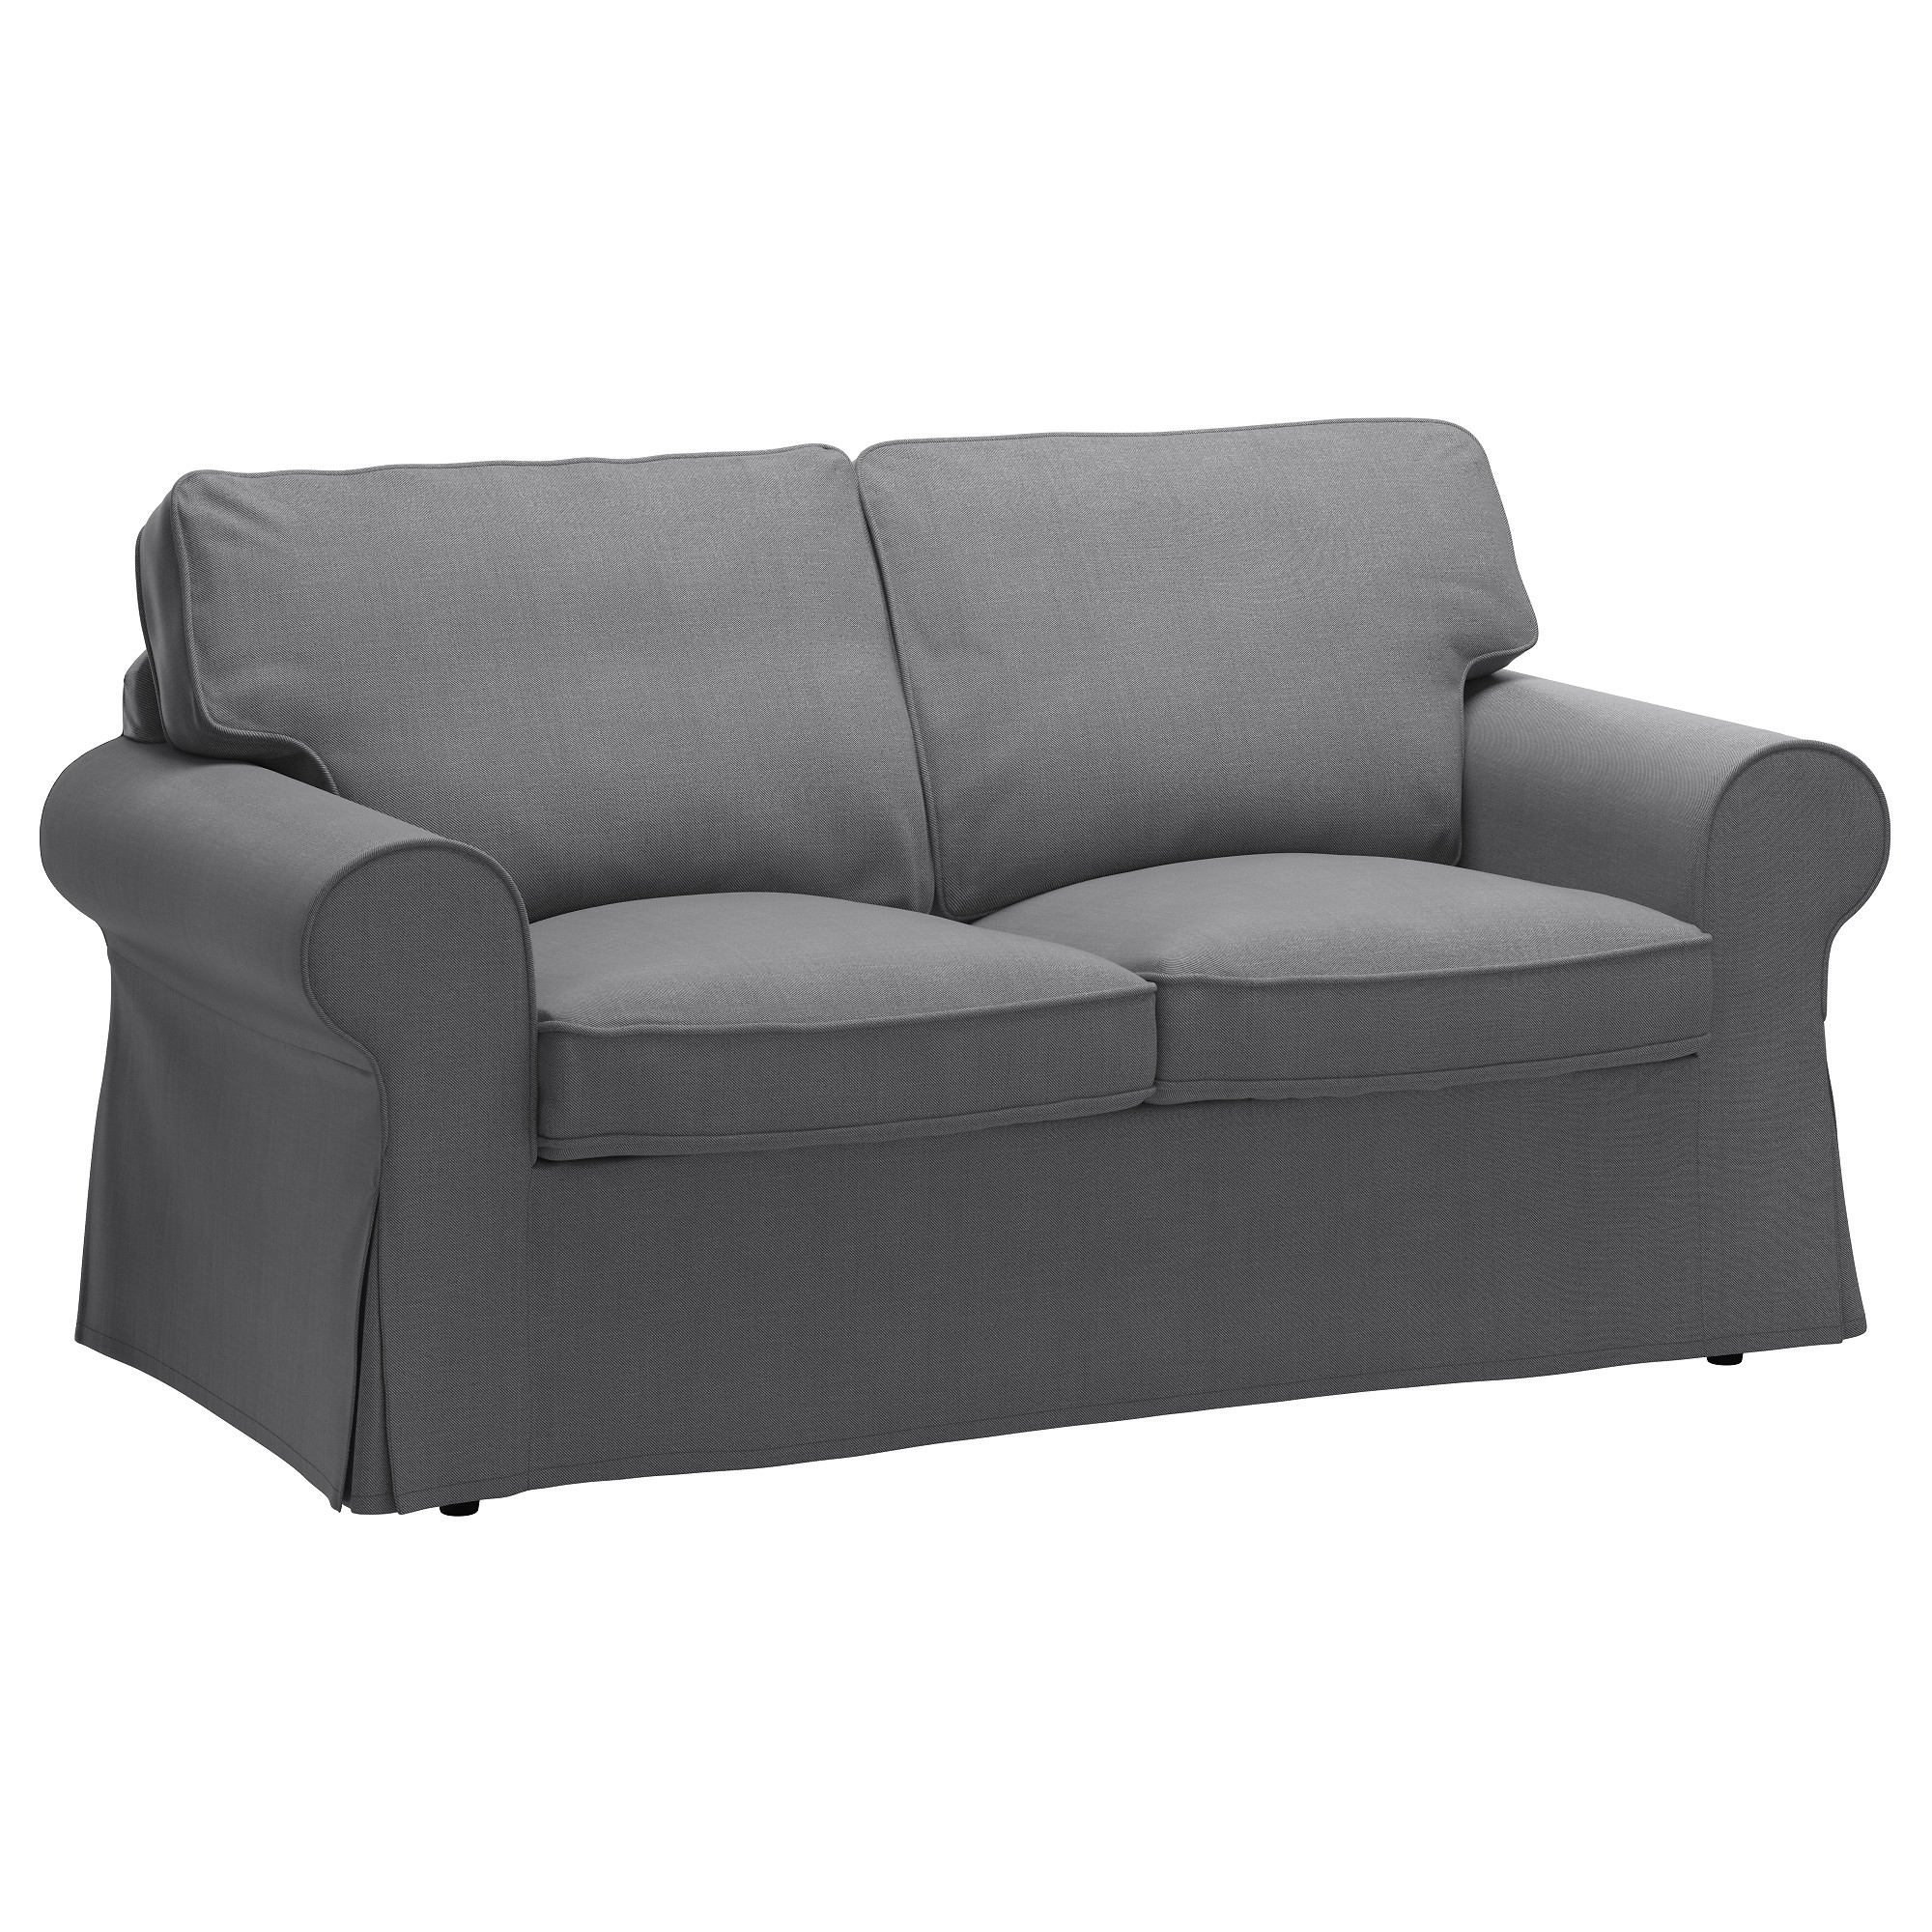 Popular Indoor Chaise Lounge Covers Pertaining To Furniture: Protecting Furniture From Kids With Sofa Arm Covers (View 15 of 15)